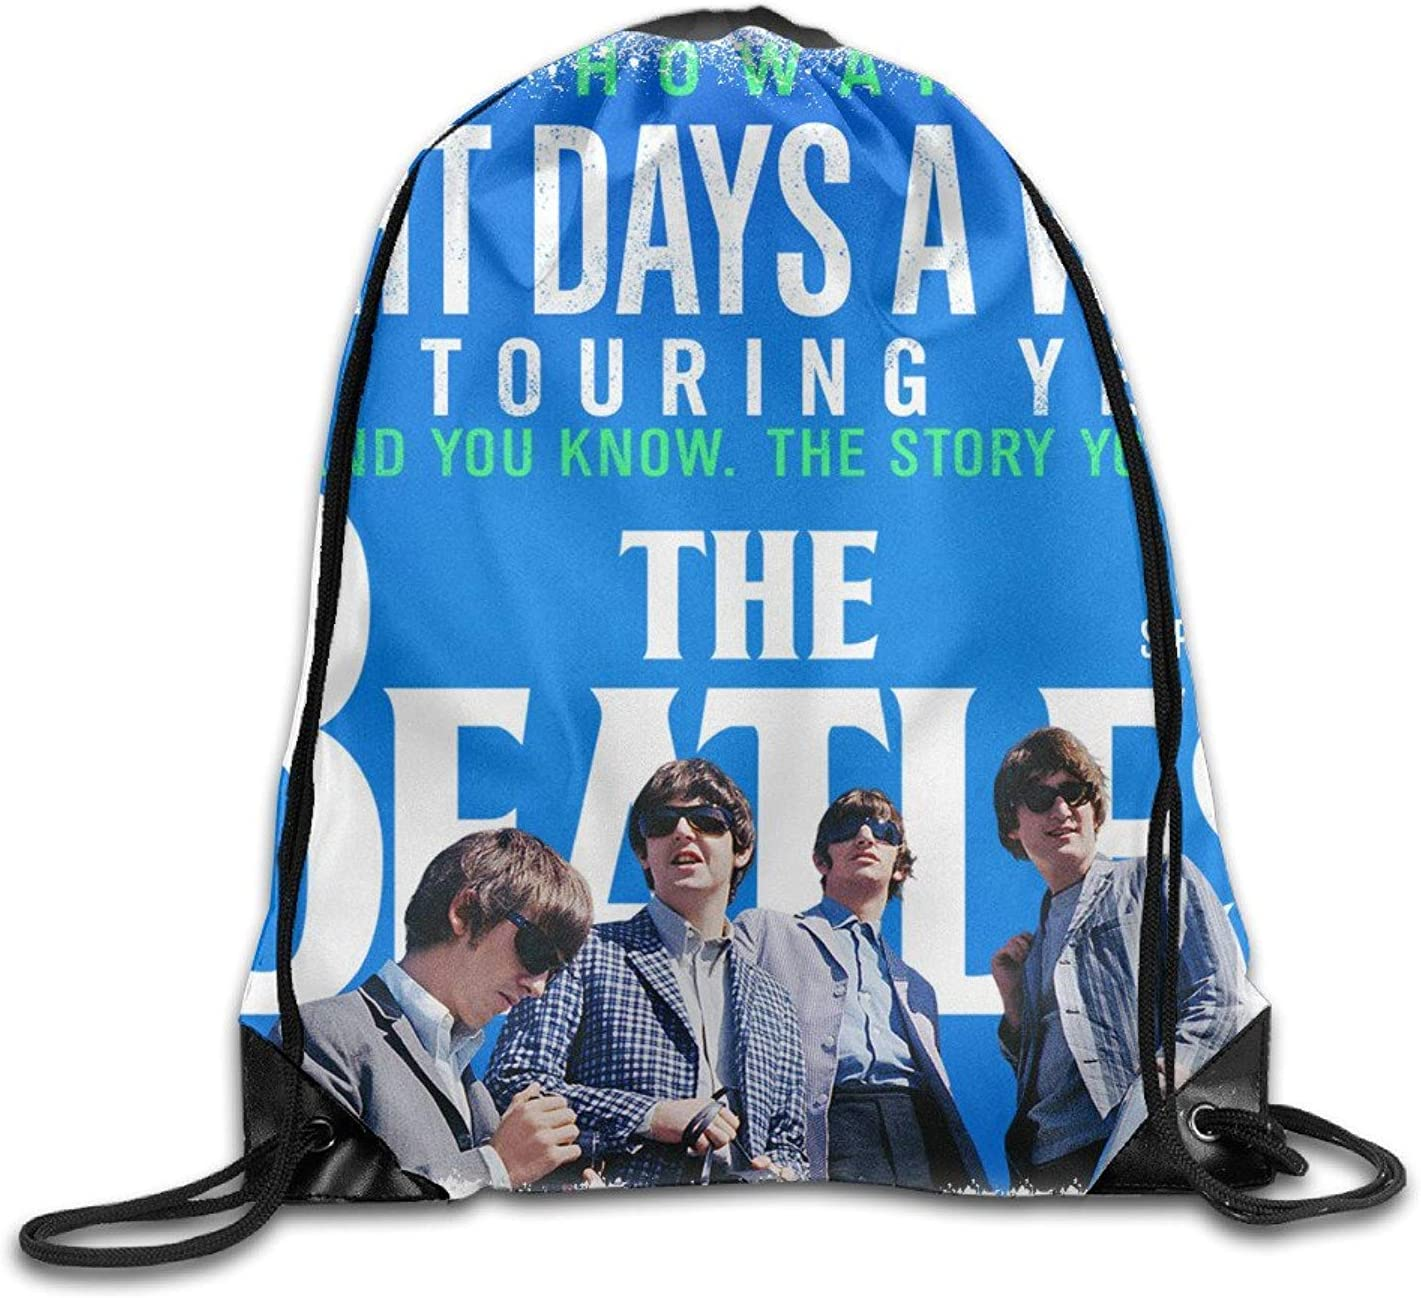 DHNKW The Beatles Drawstring Bag,Drawstring Backpack,Sport Bag